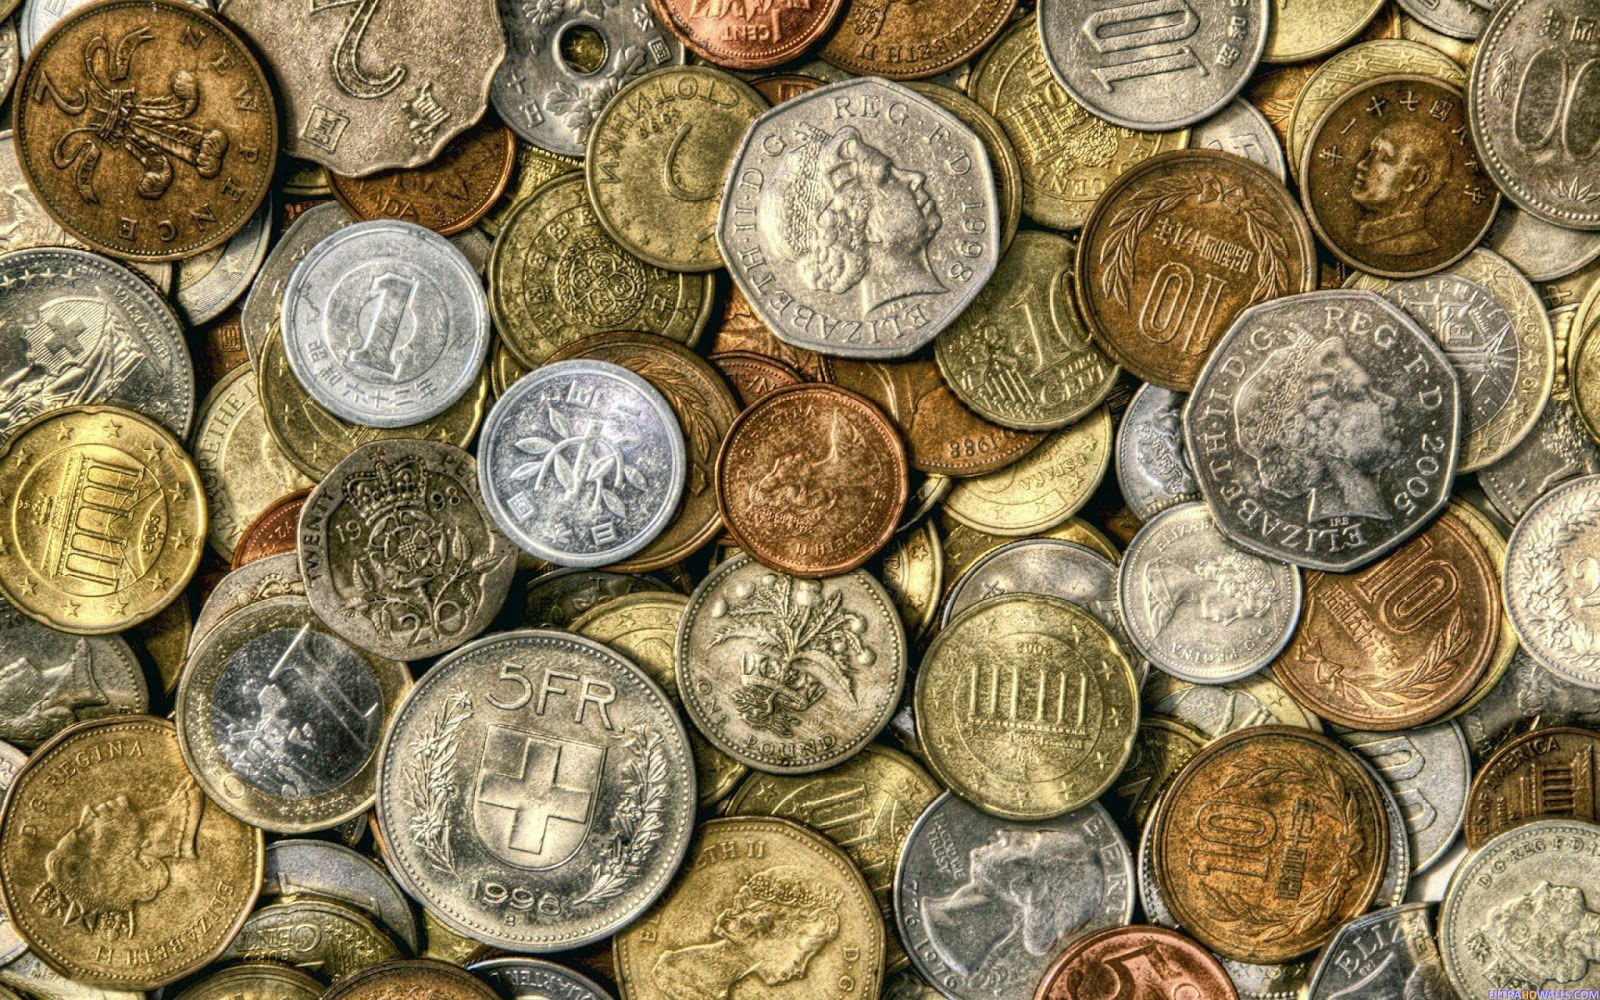 Free high quality awesome coins wallpapers template blog galeri foto - Money hd wallpapers 1080p ...